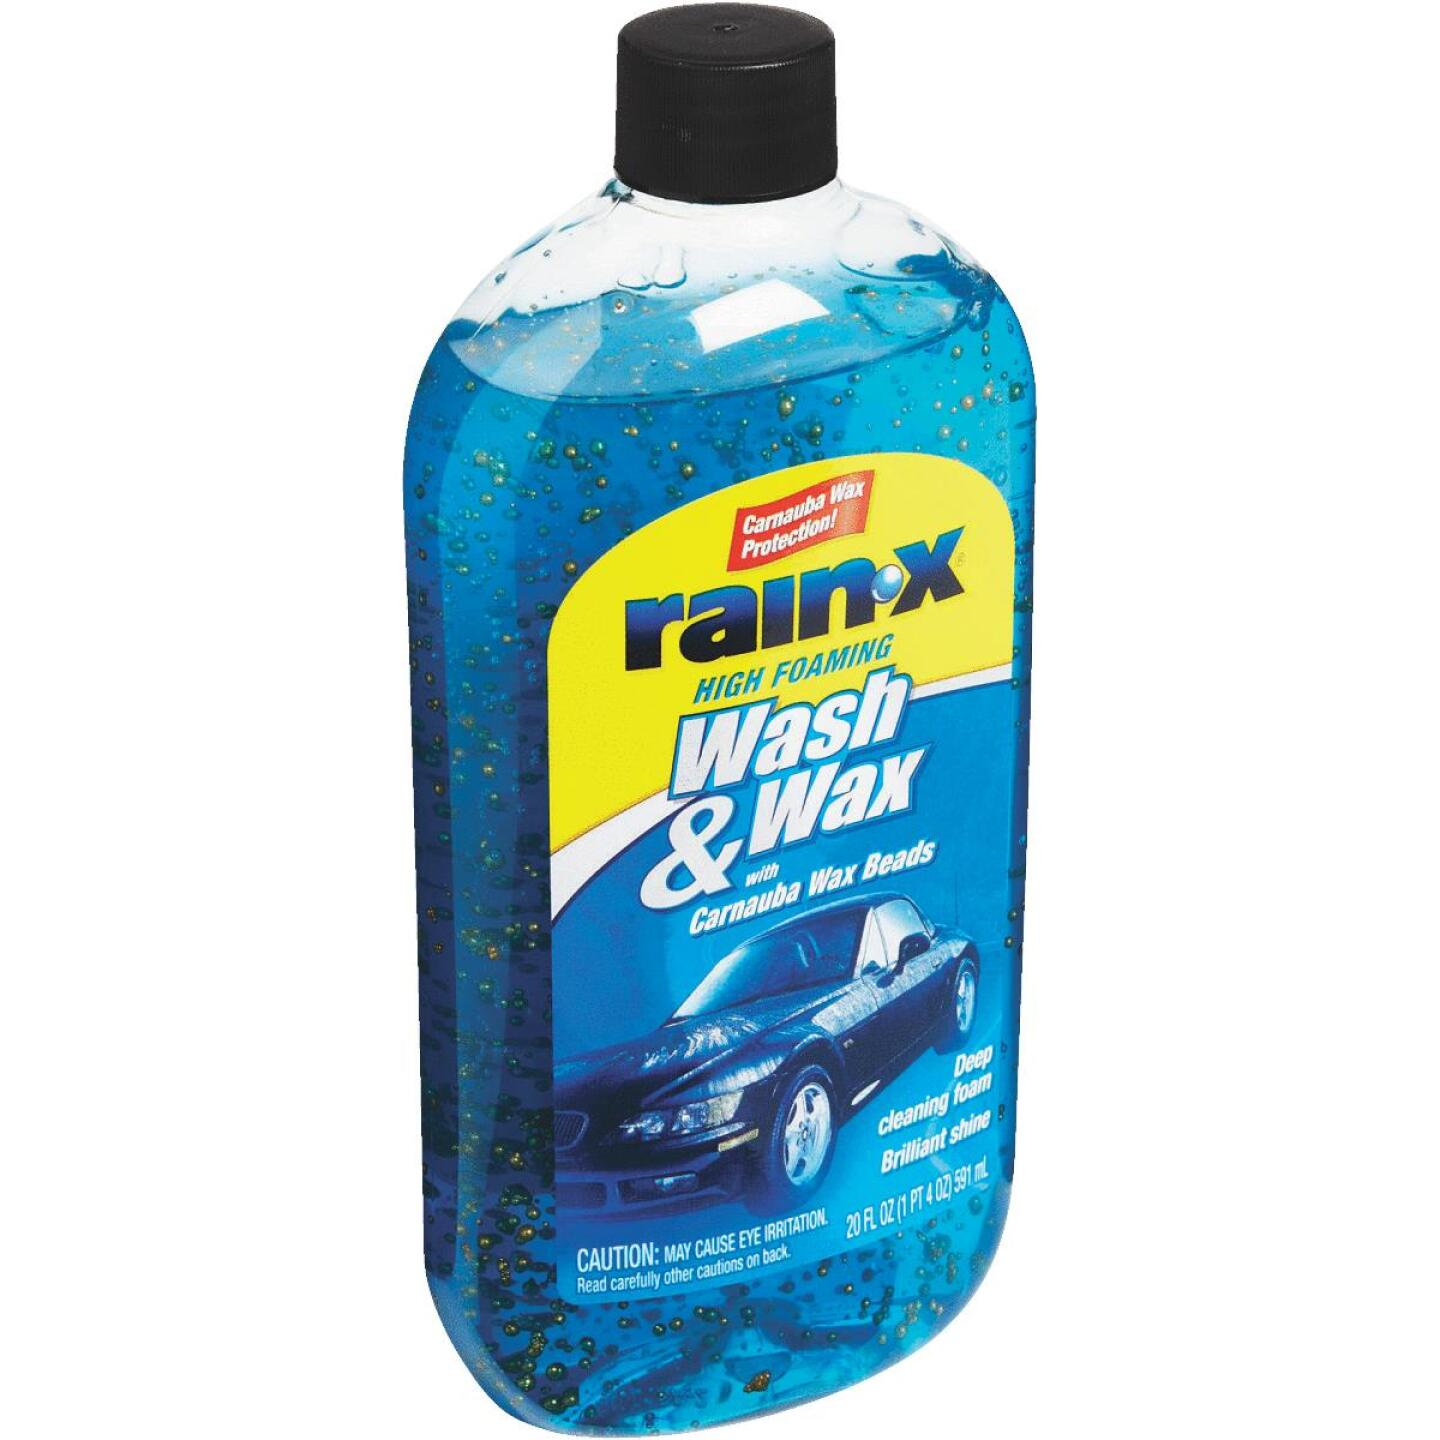 RAIN-X 20 oz Foam with Carnauba Wax Beads Car Wash Image 3